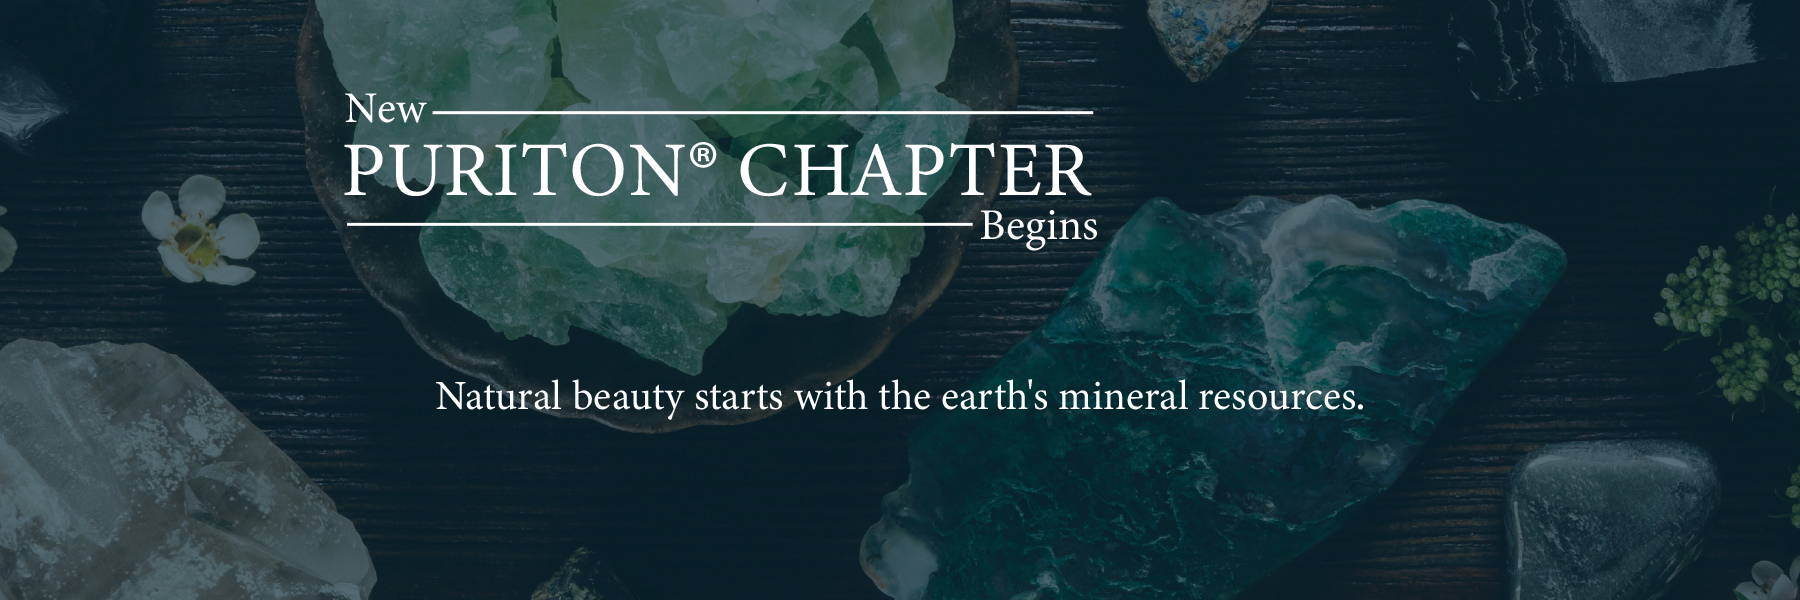 new puriton chaper begins natural beauty starts with the earth's mineral resource mineral products cosmetics natural products cosmetic